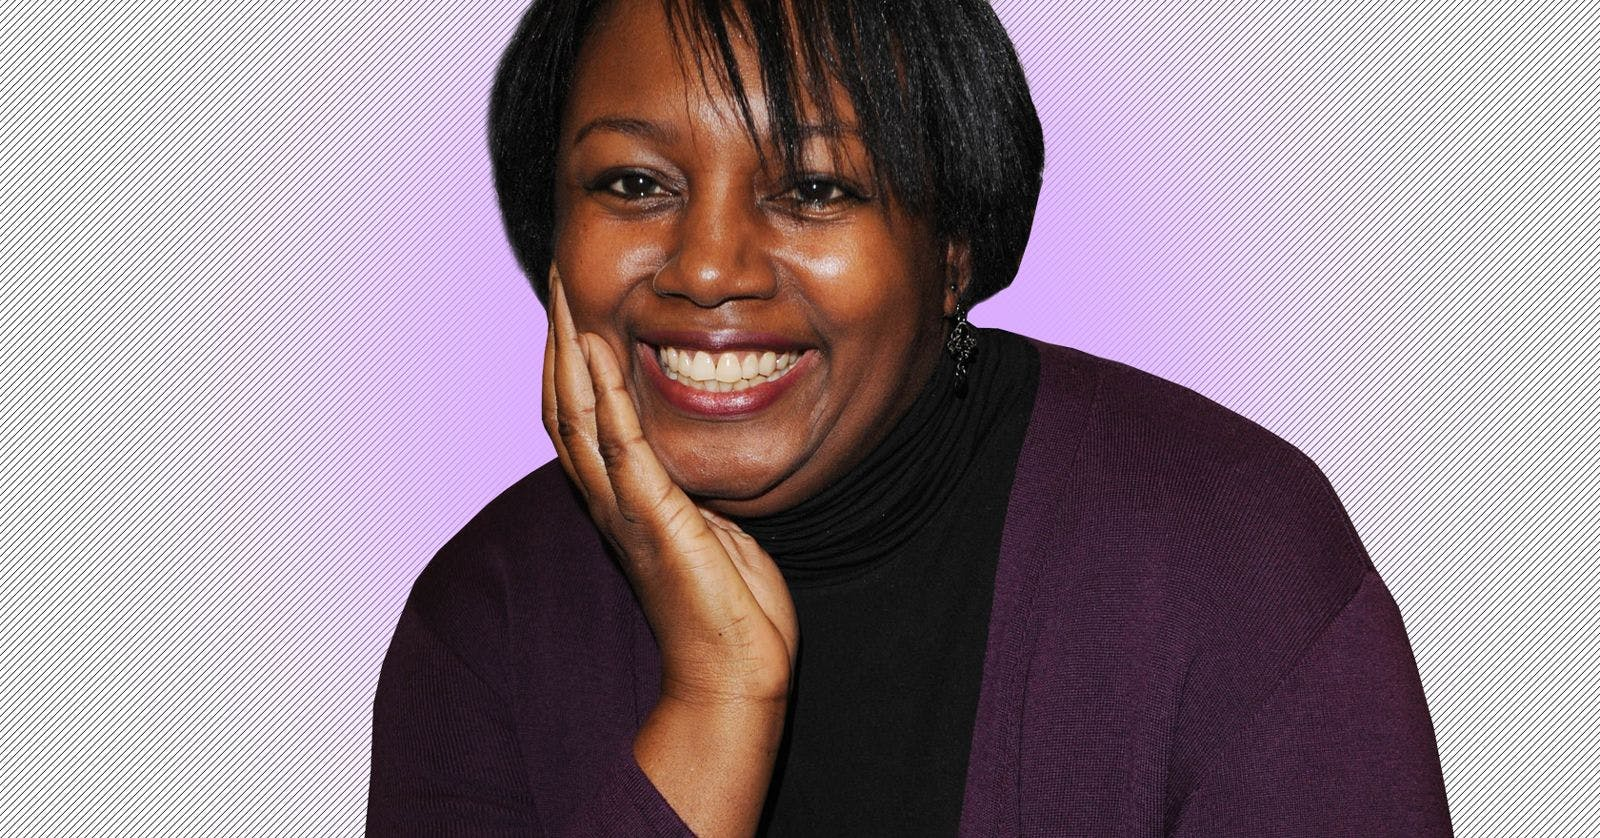 Malorie Blackman leads Penguin's important new podcast for book lovers